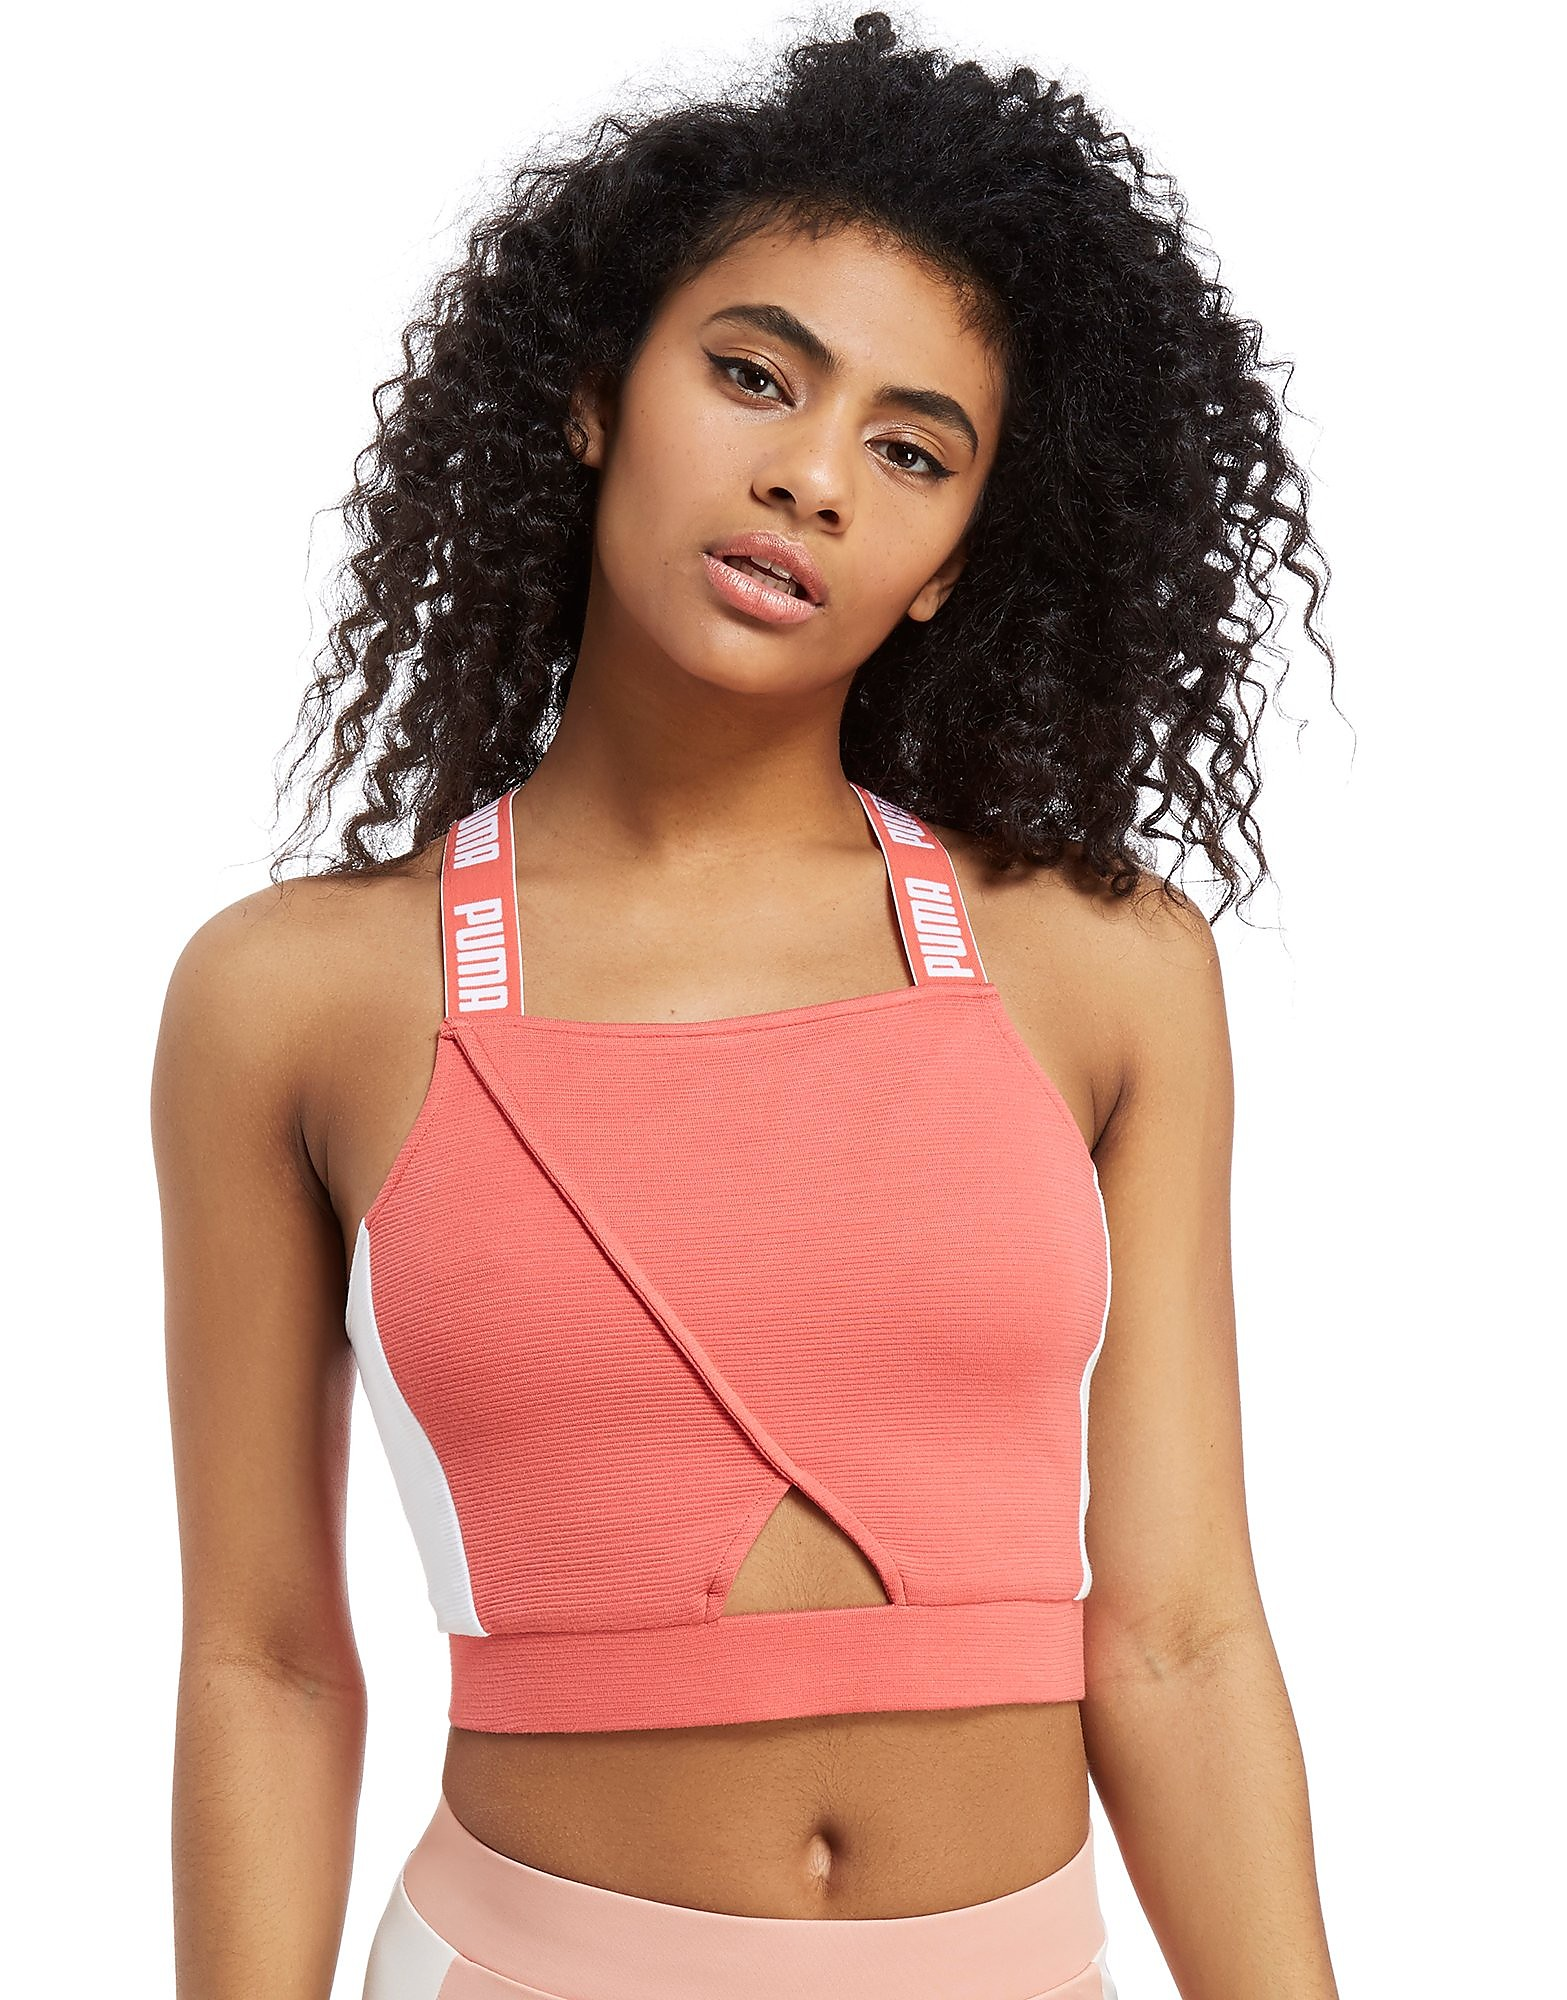 PUMA Archive Crop Top